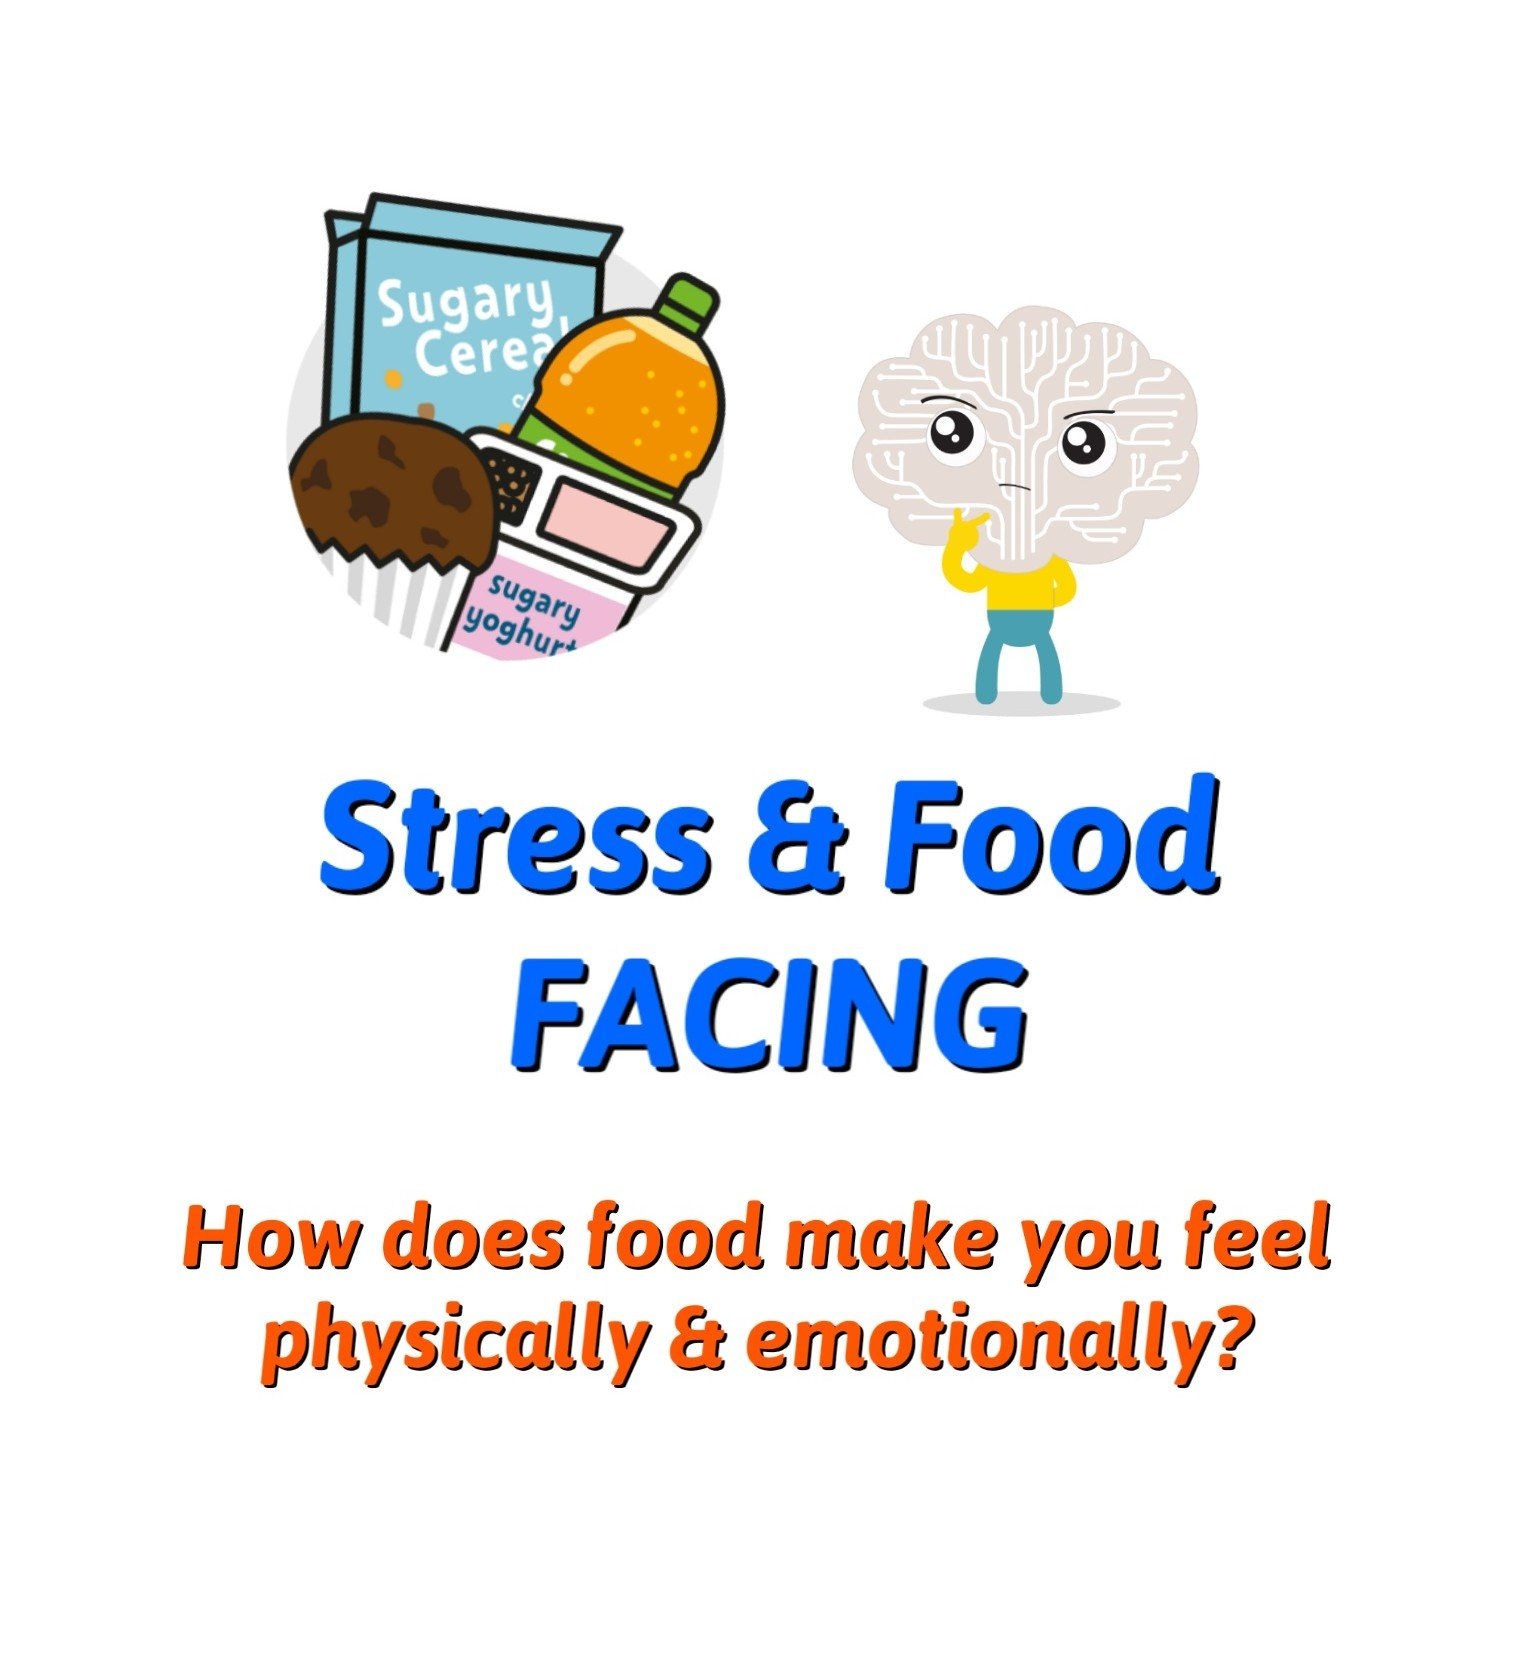 Stress & Food Facing